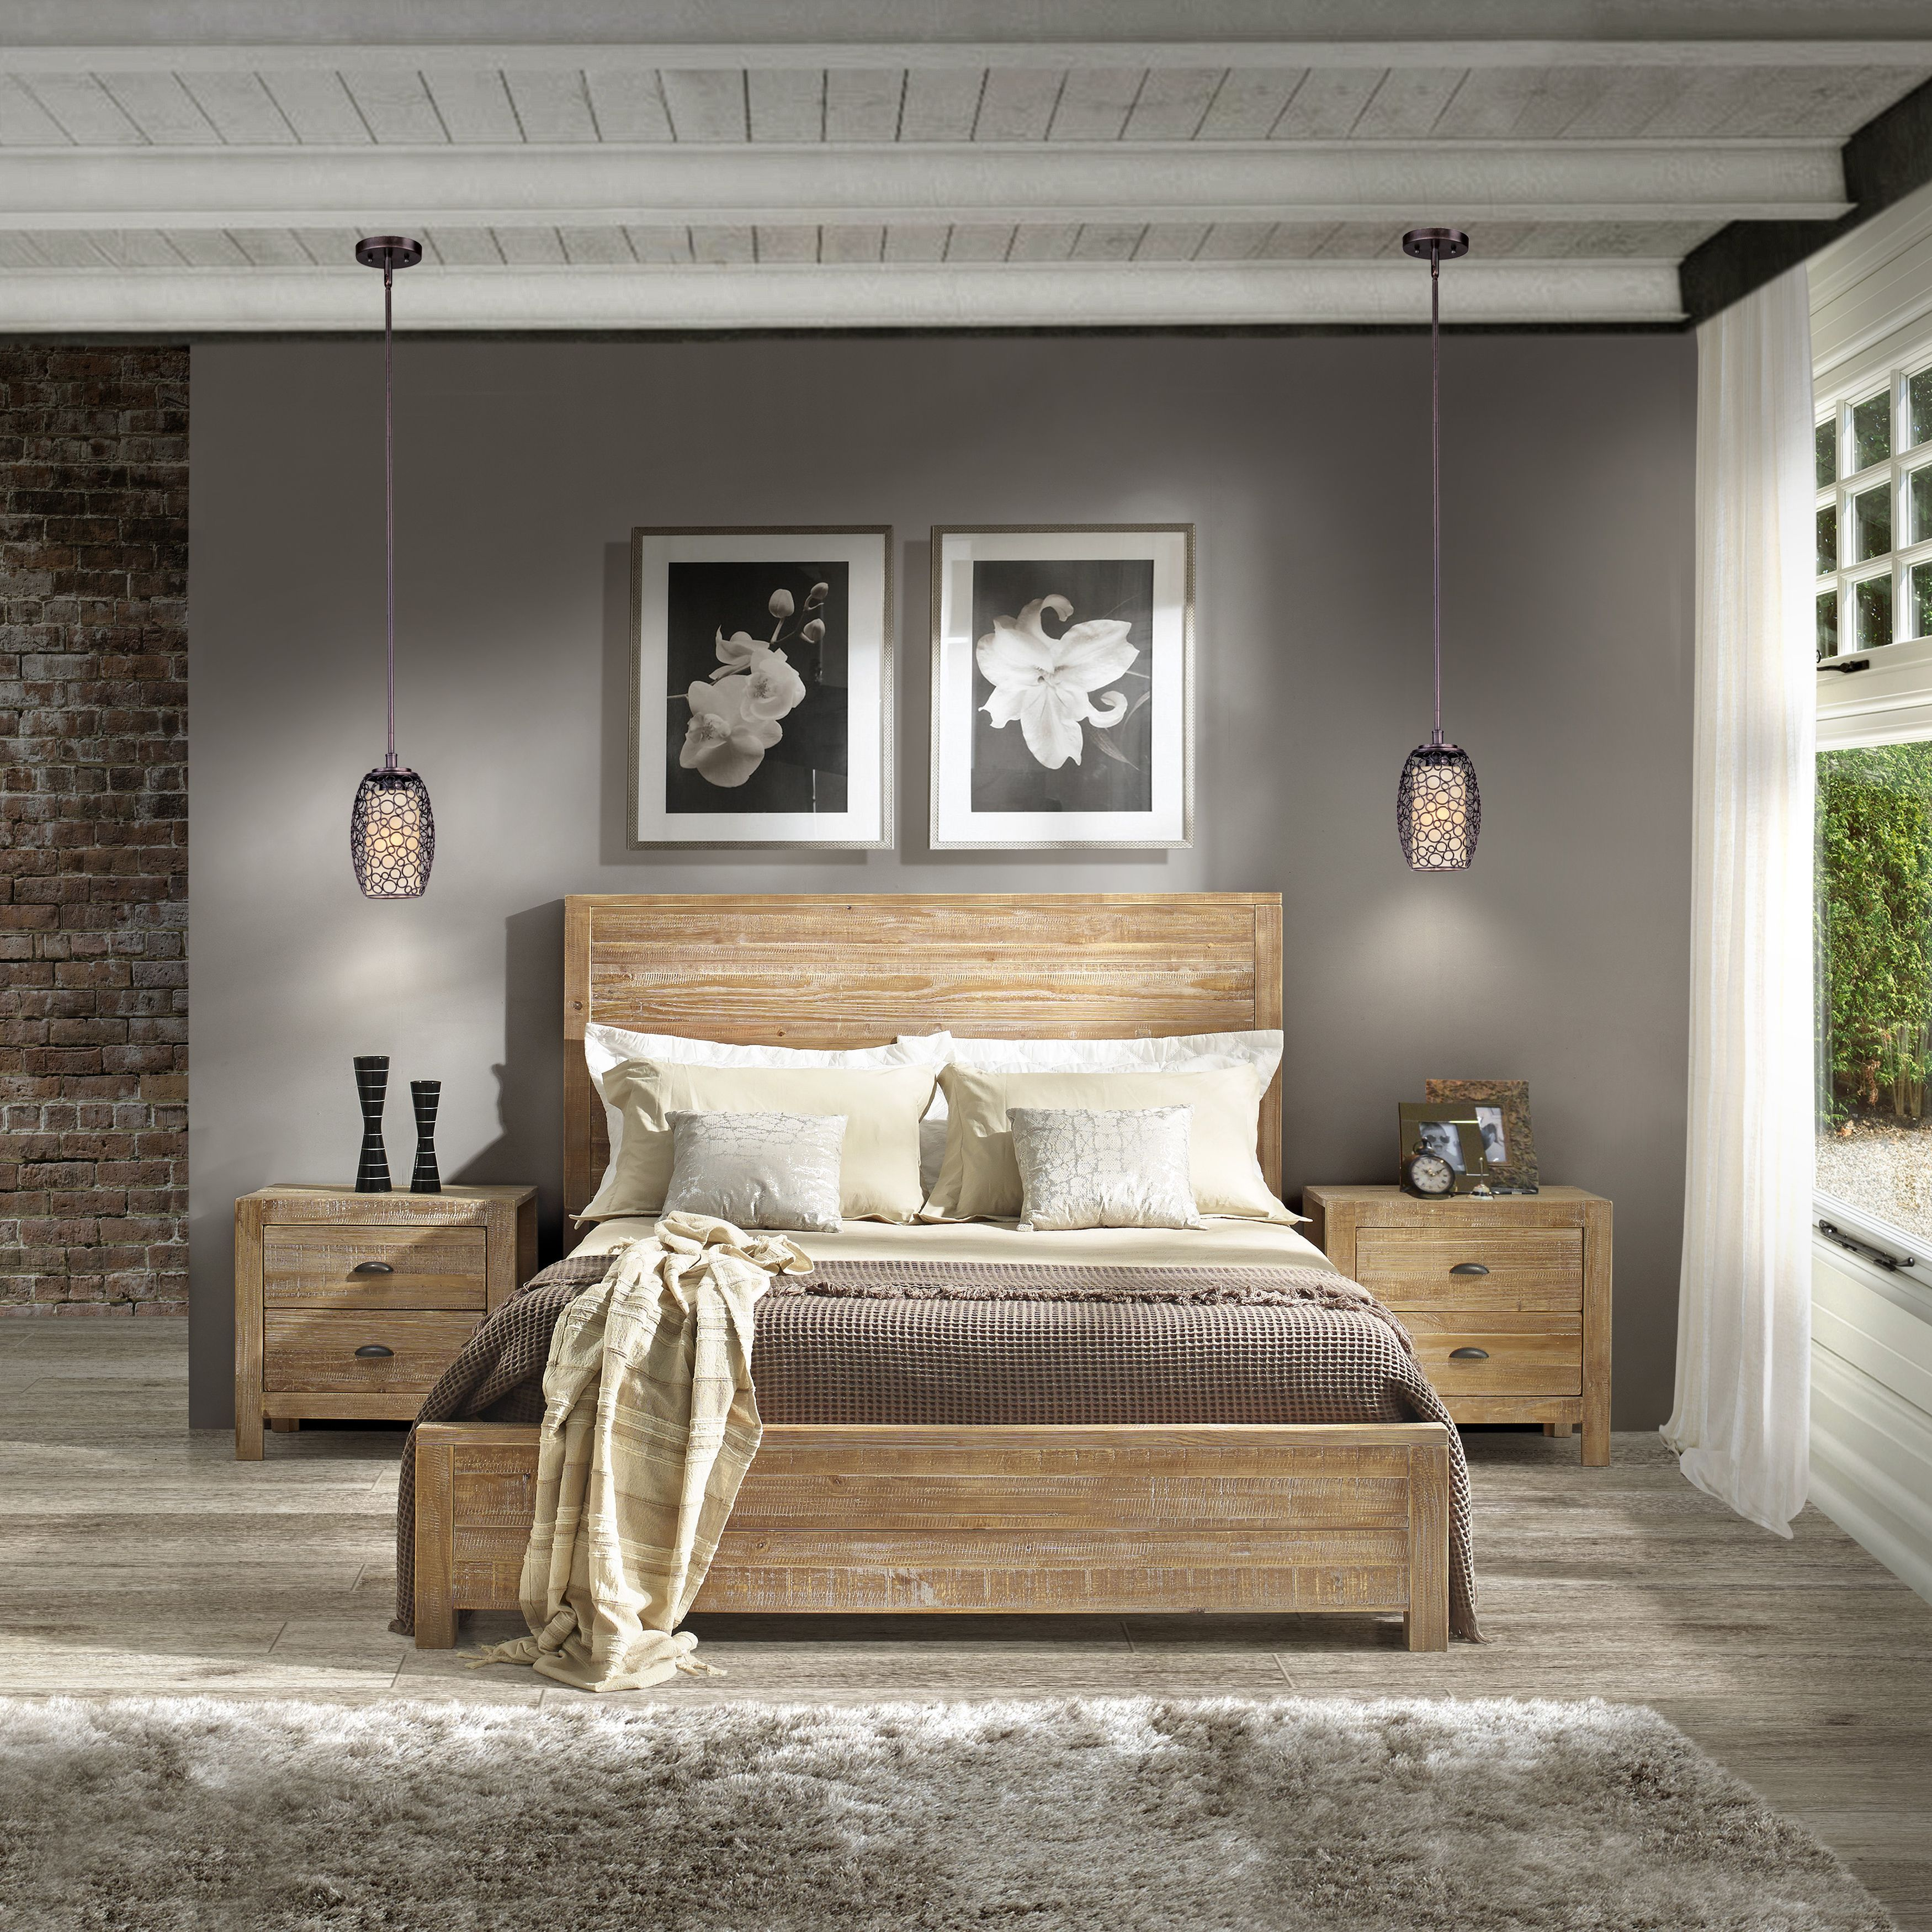 10 Beautiful wooden headboards for a warm and inviting bedroom dcor